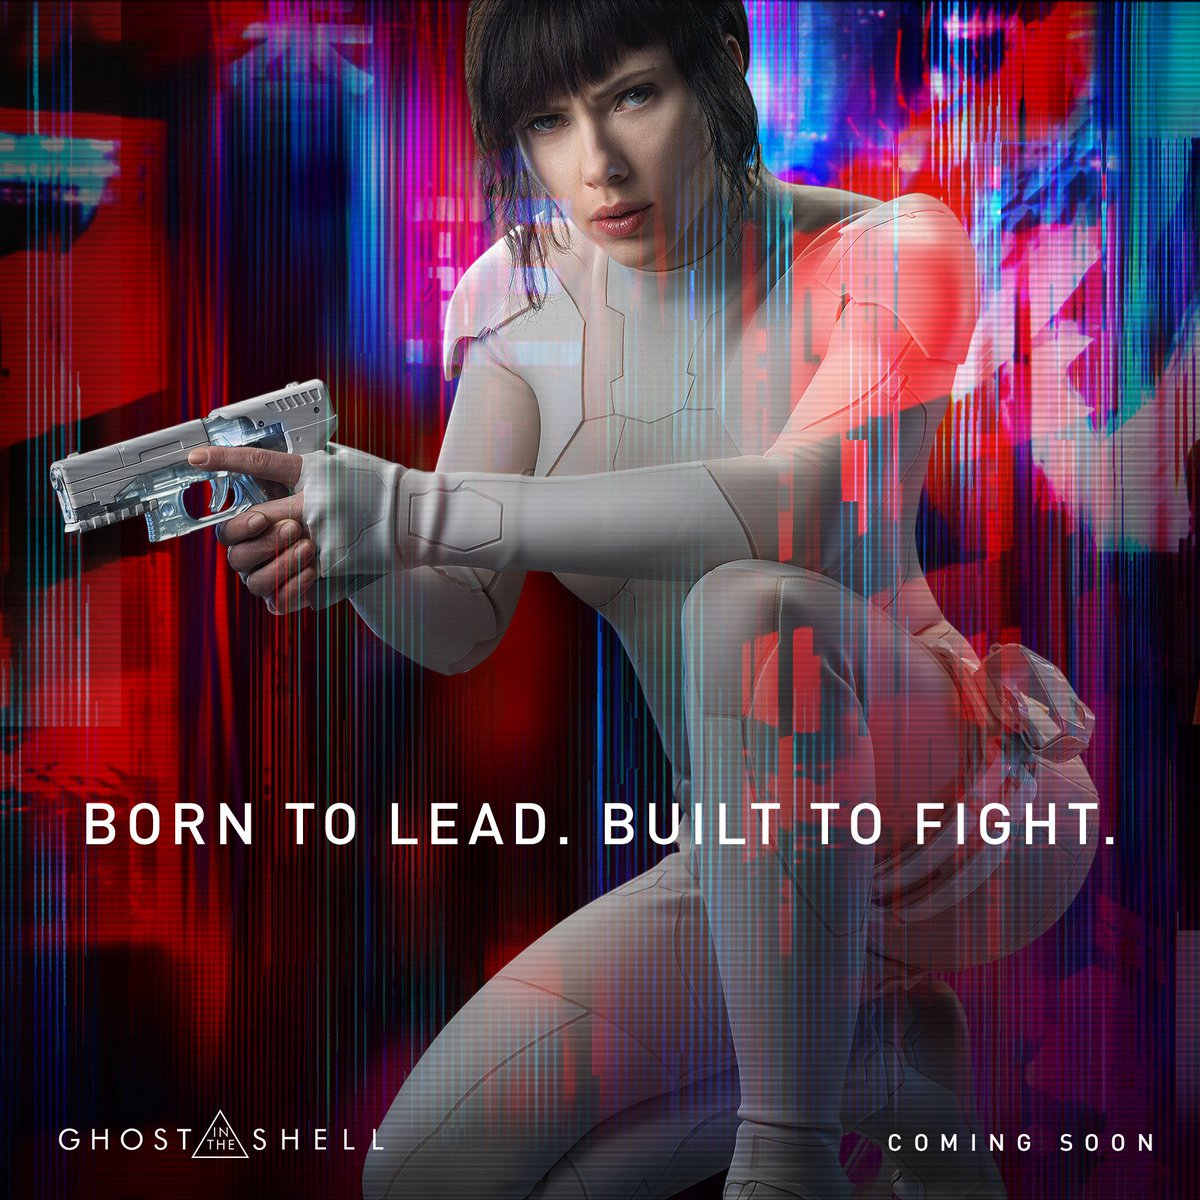 Scarlett Johansson Kicks Ass For International Women S Day In New Ghost In The Shell Promos And A Poster